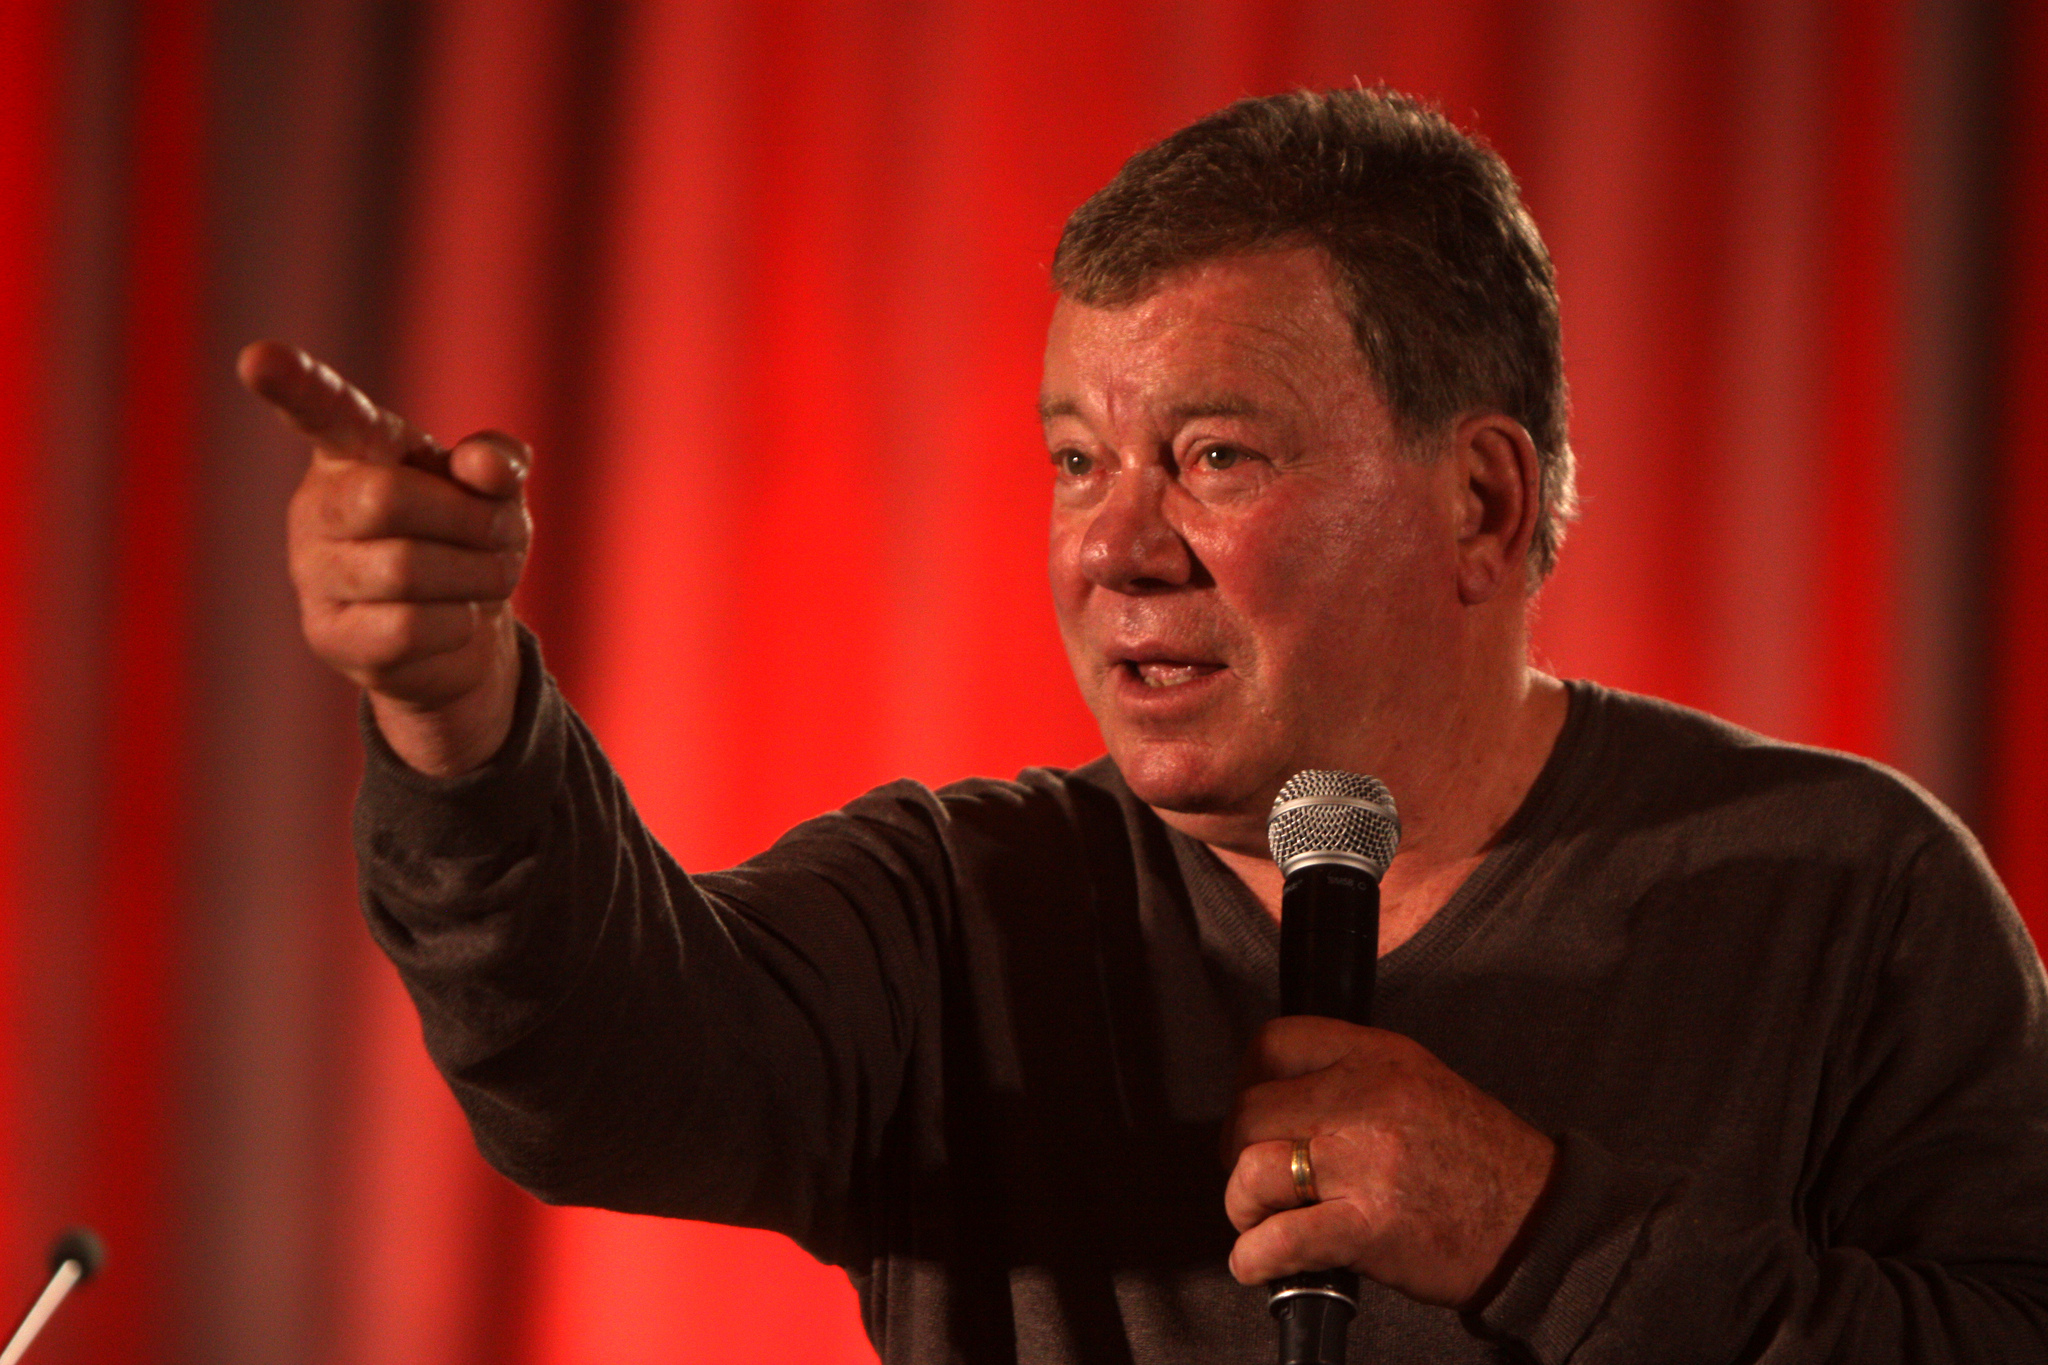 William Shatner by Gage Skidmore. CC-BY-SA 2.0